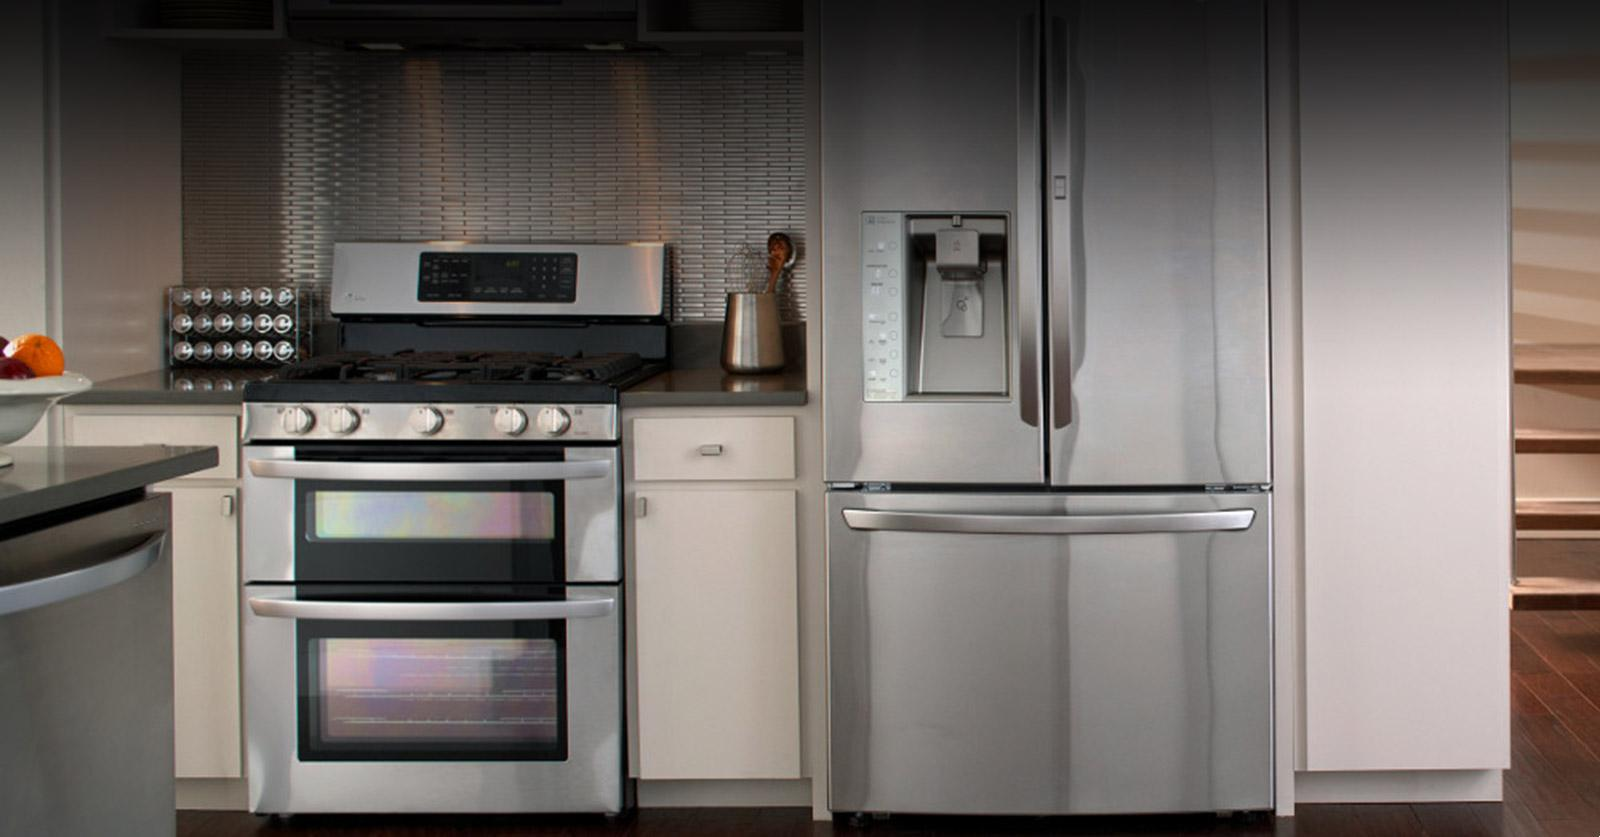 wonderful Lg Kitchen Appliance Reviews #9: Front view of an LG refrigerator and an LG oven.